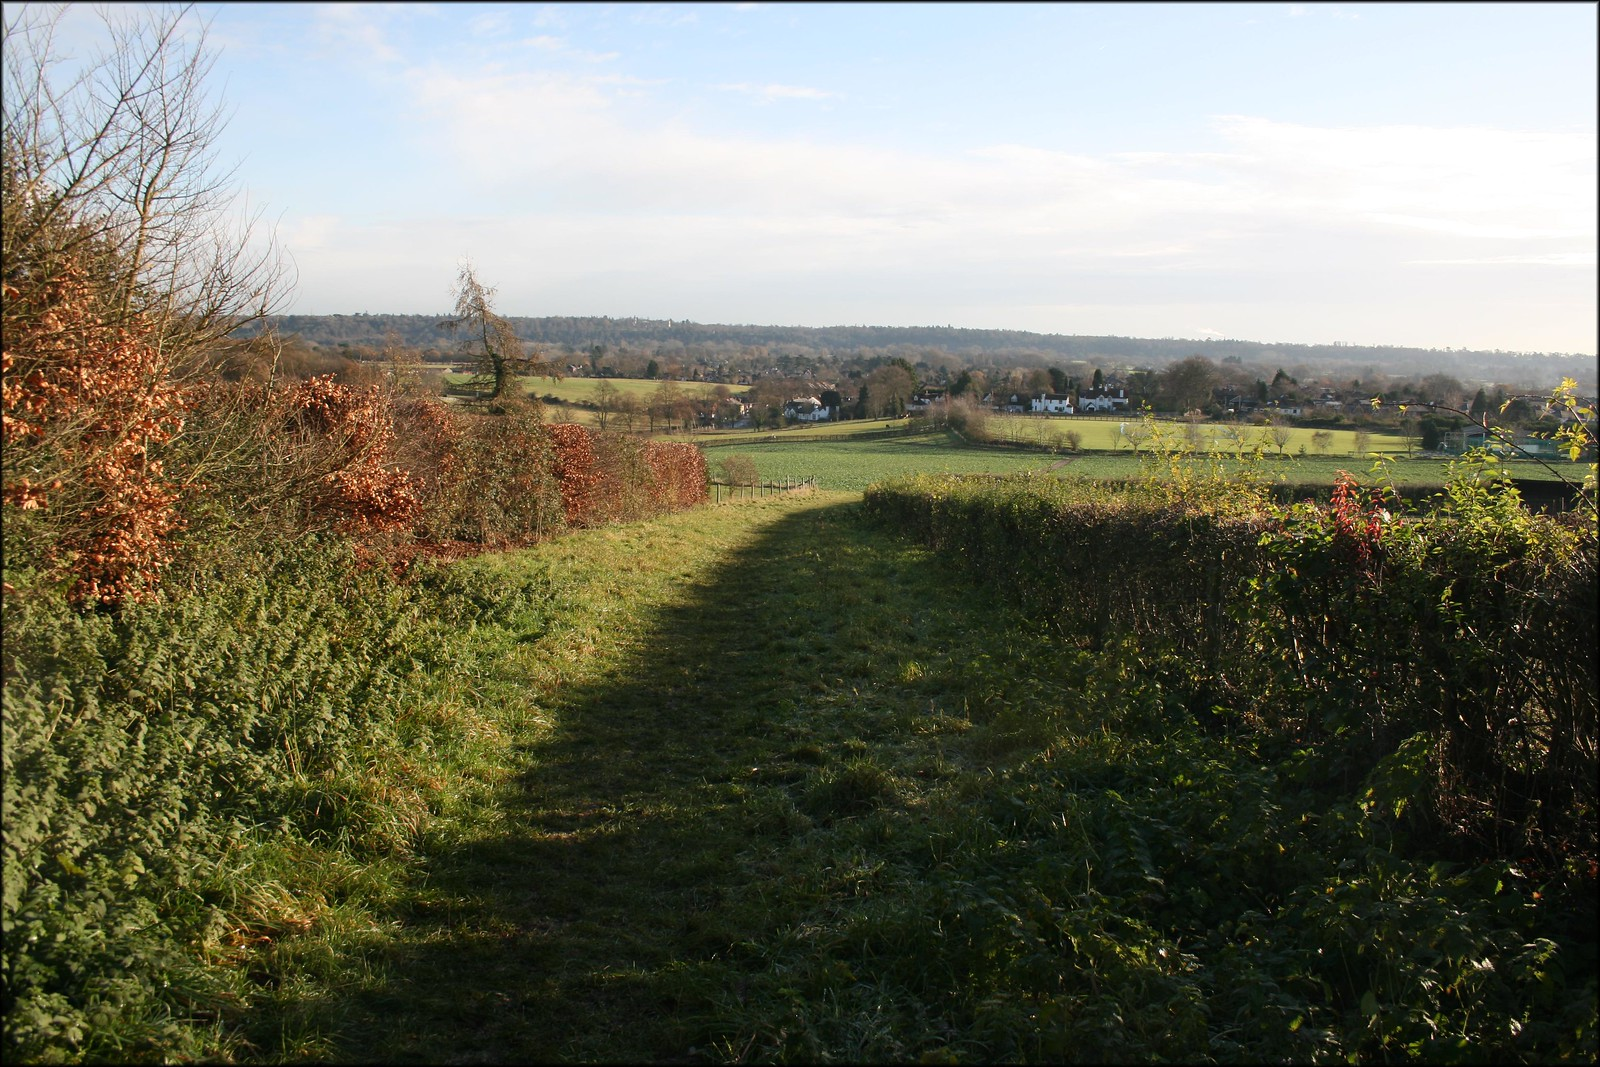 The Thames valley near Cookham